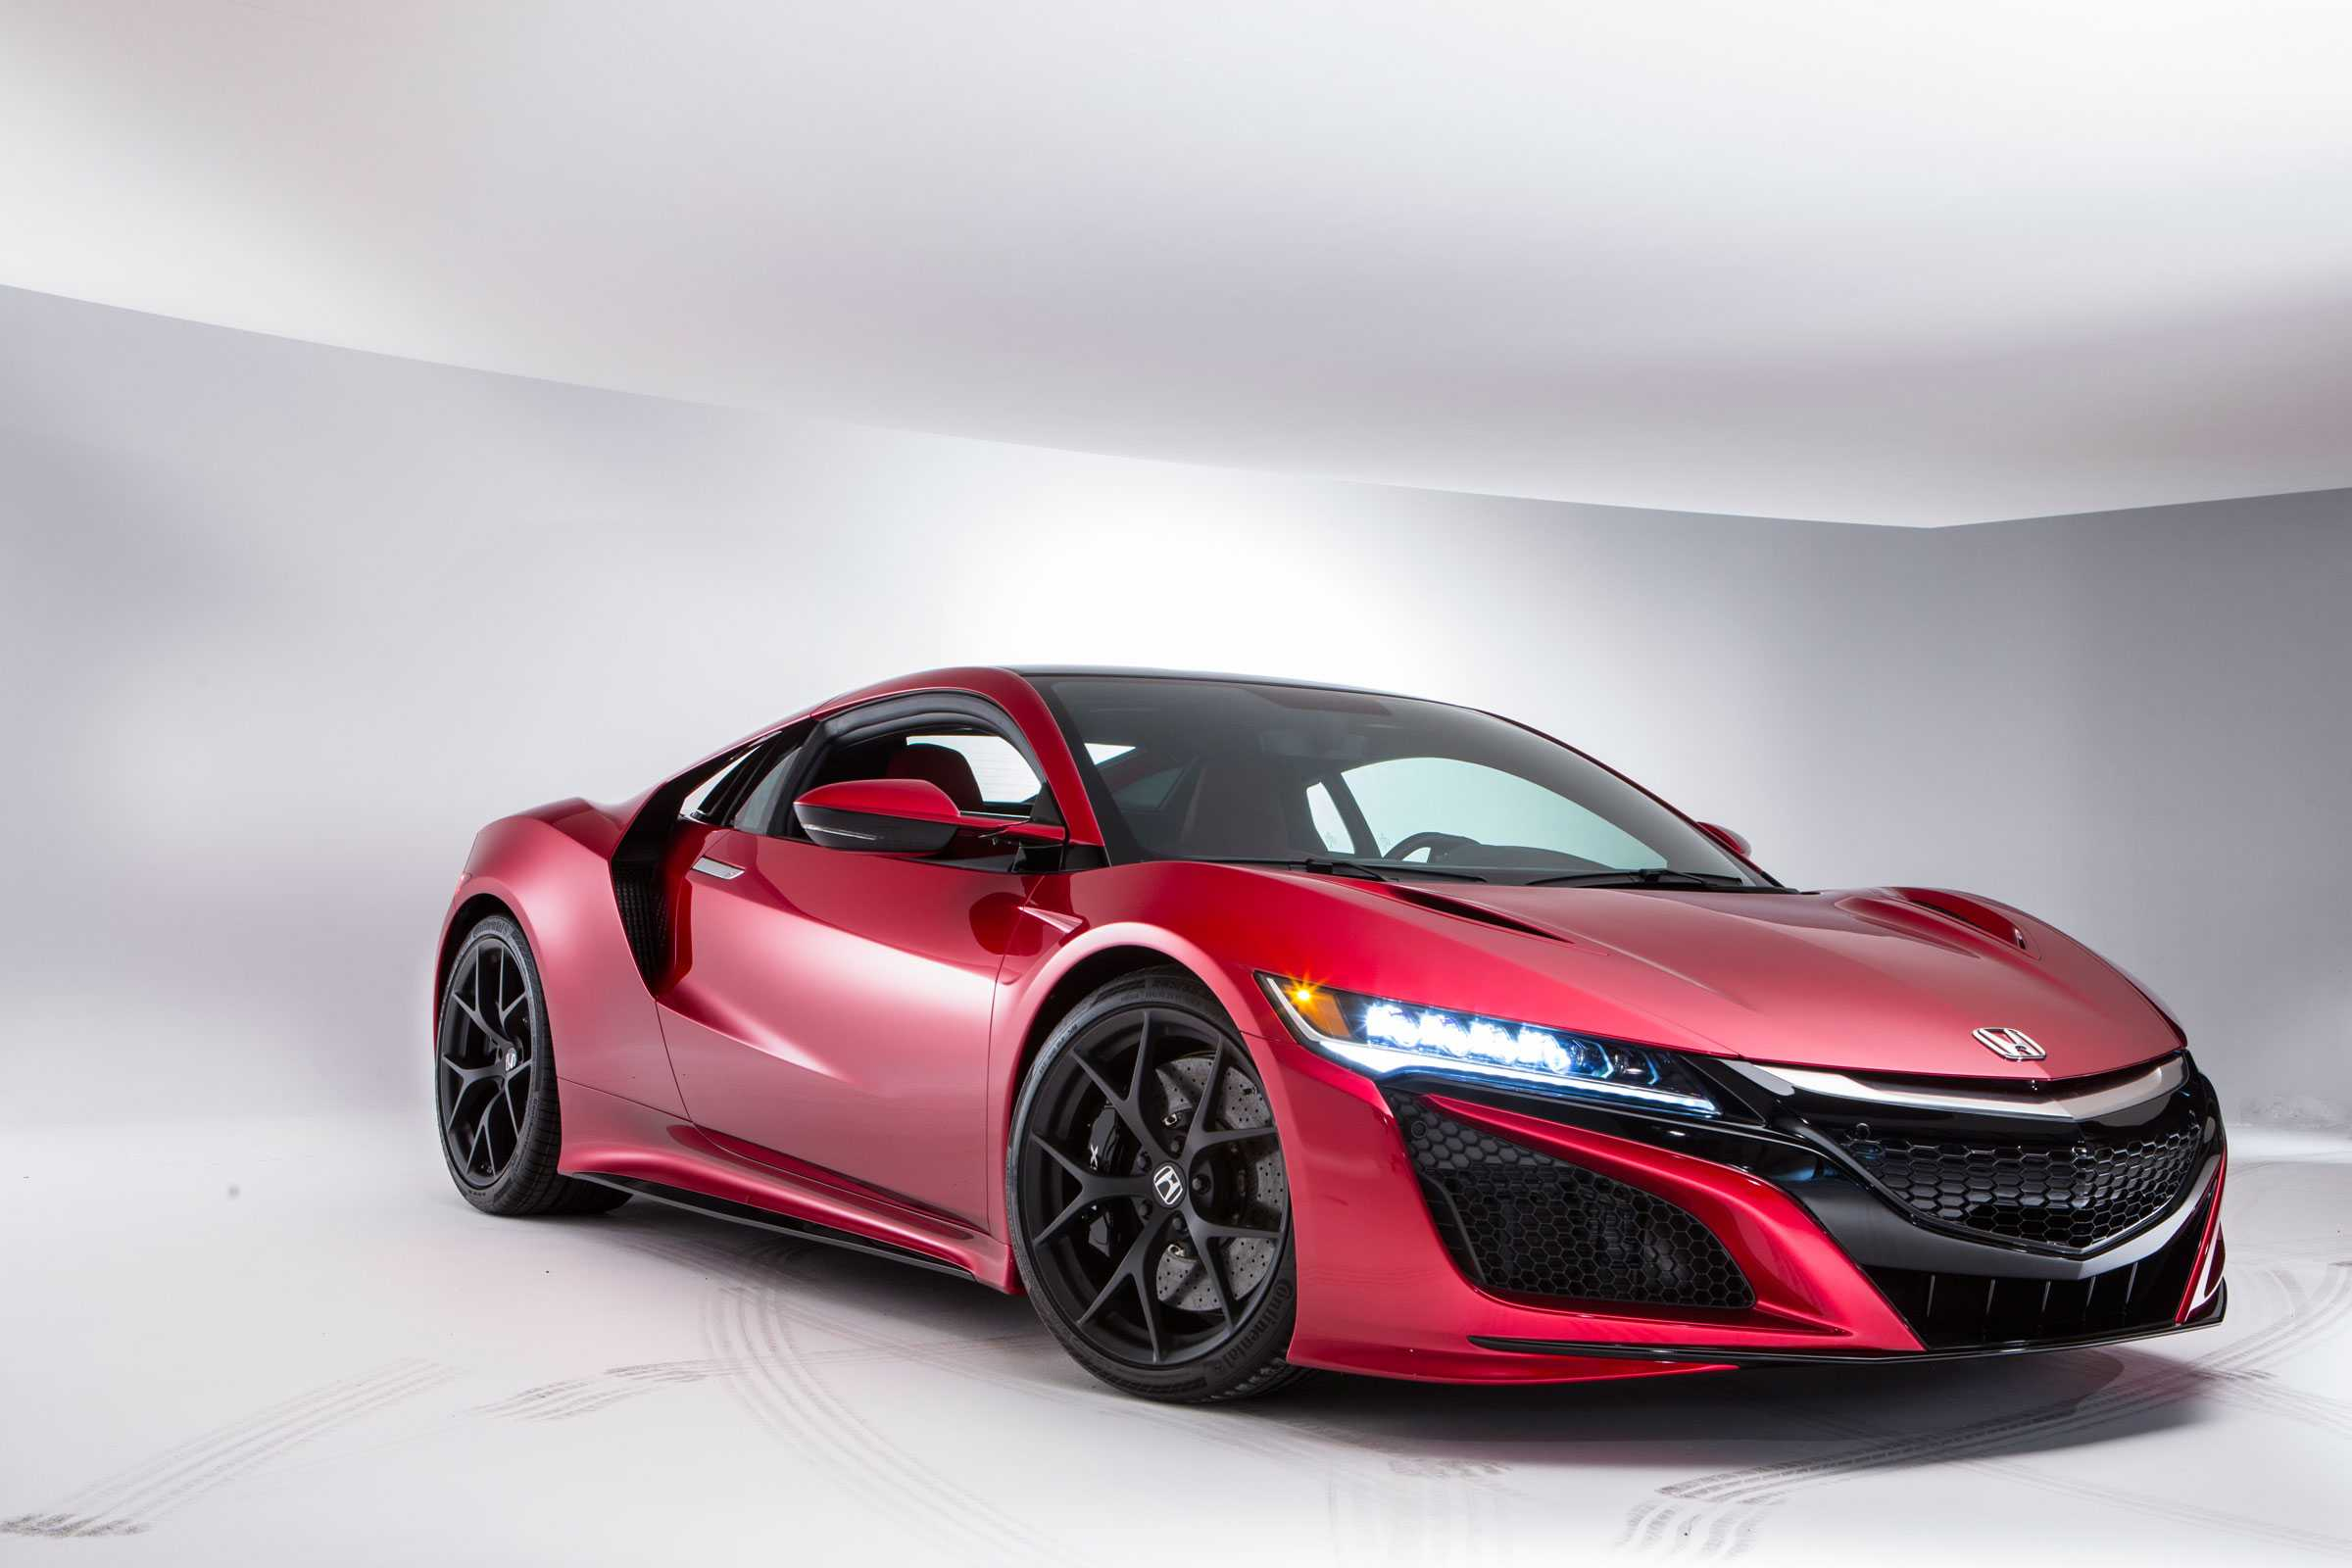 New Honda NSX 2016 Edition Pricing and Features Revealed